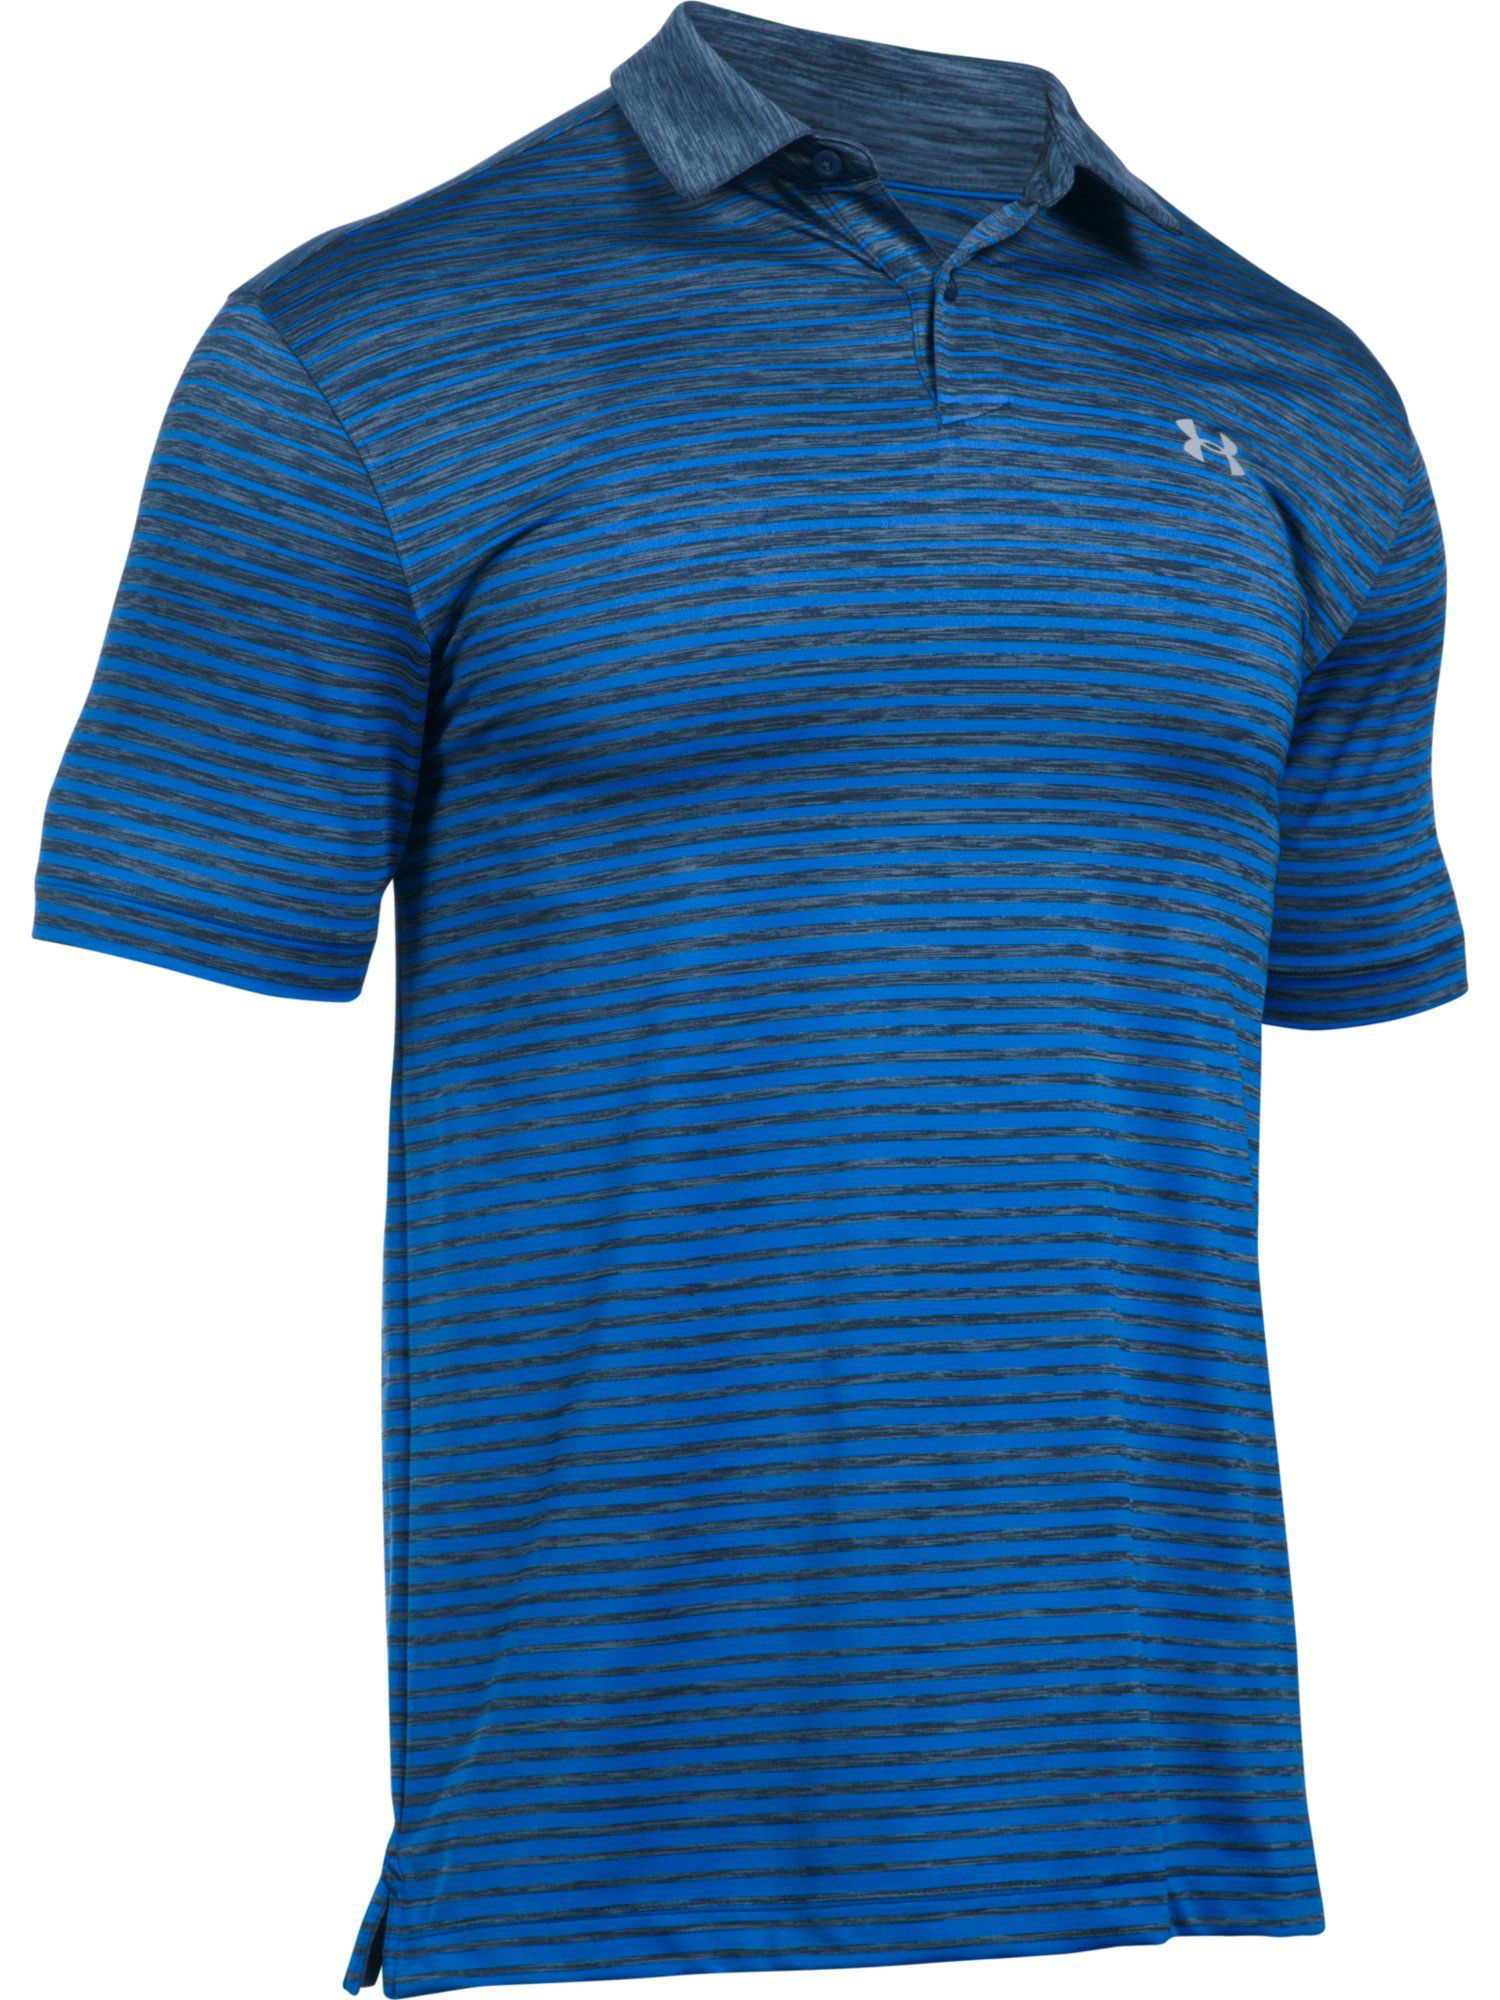 Men's Under Armour Trajectory Stripe Polo, Blue